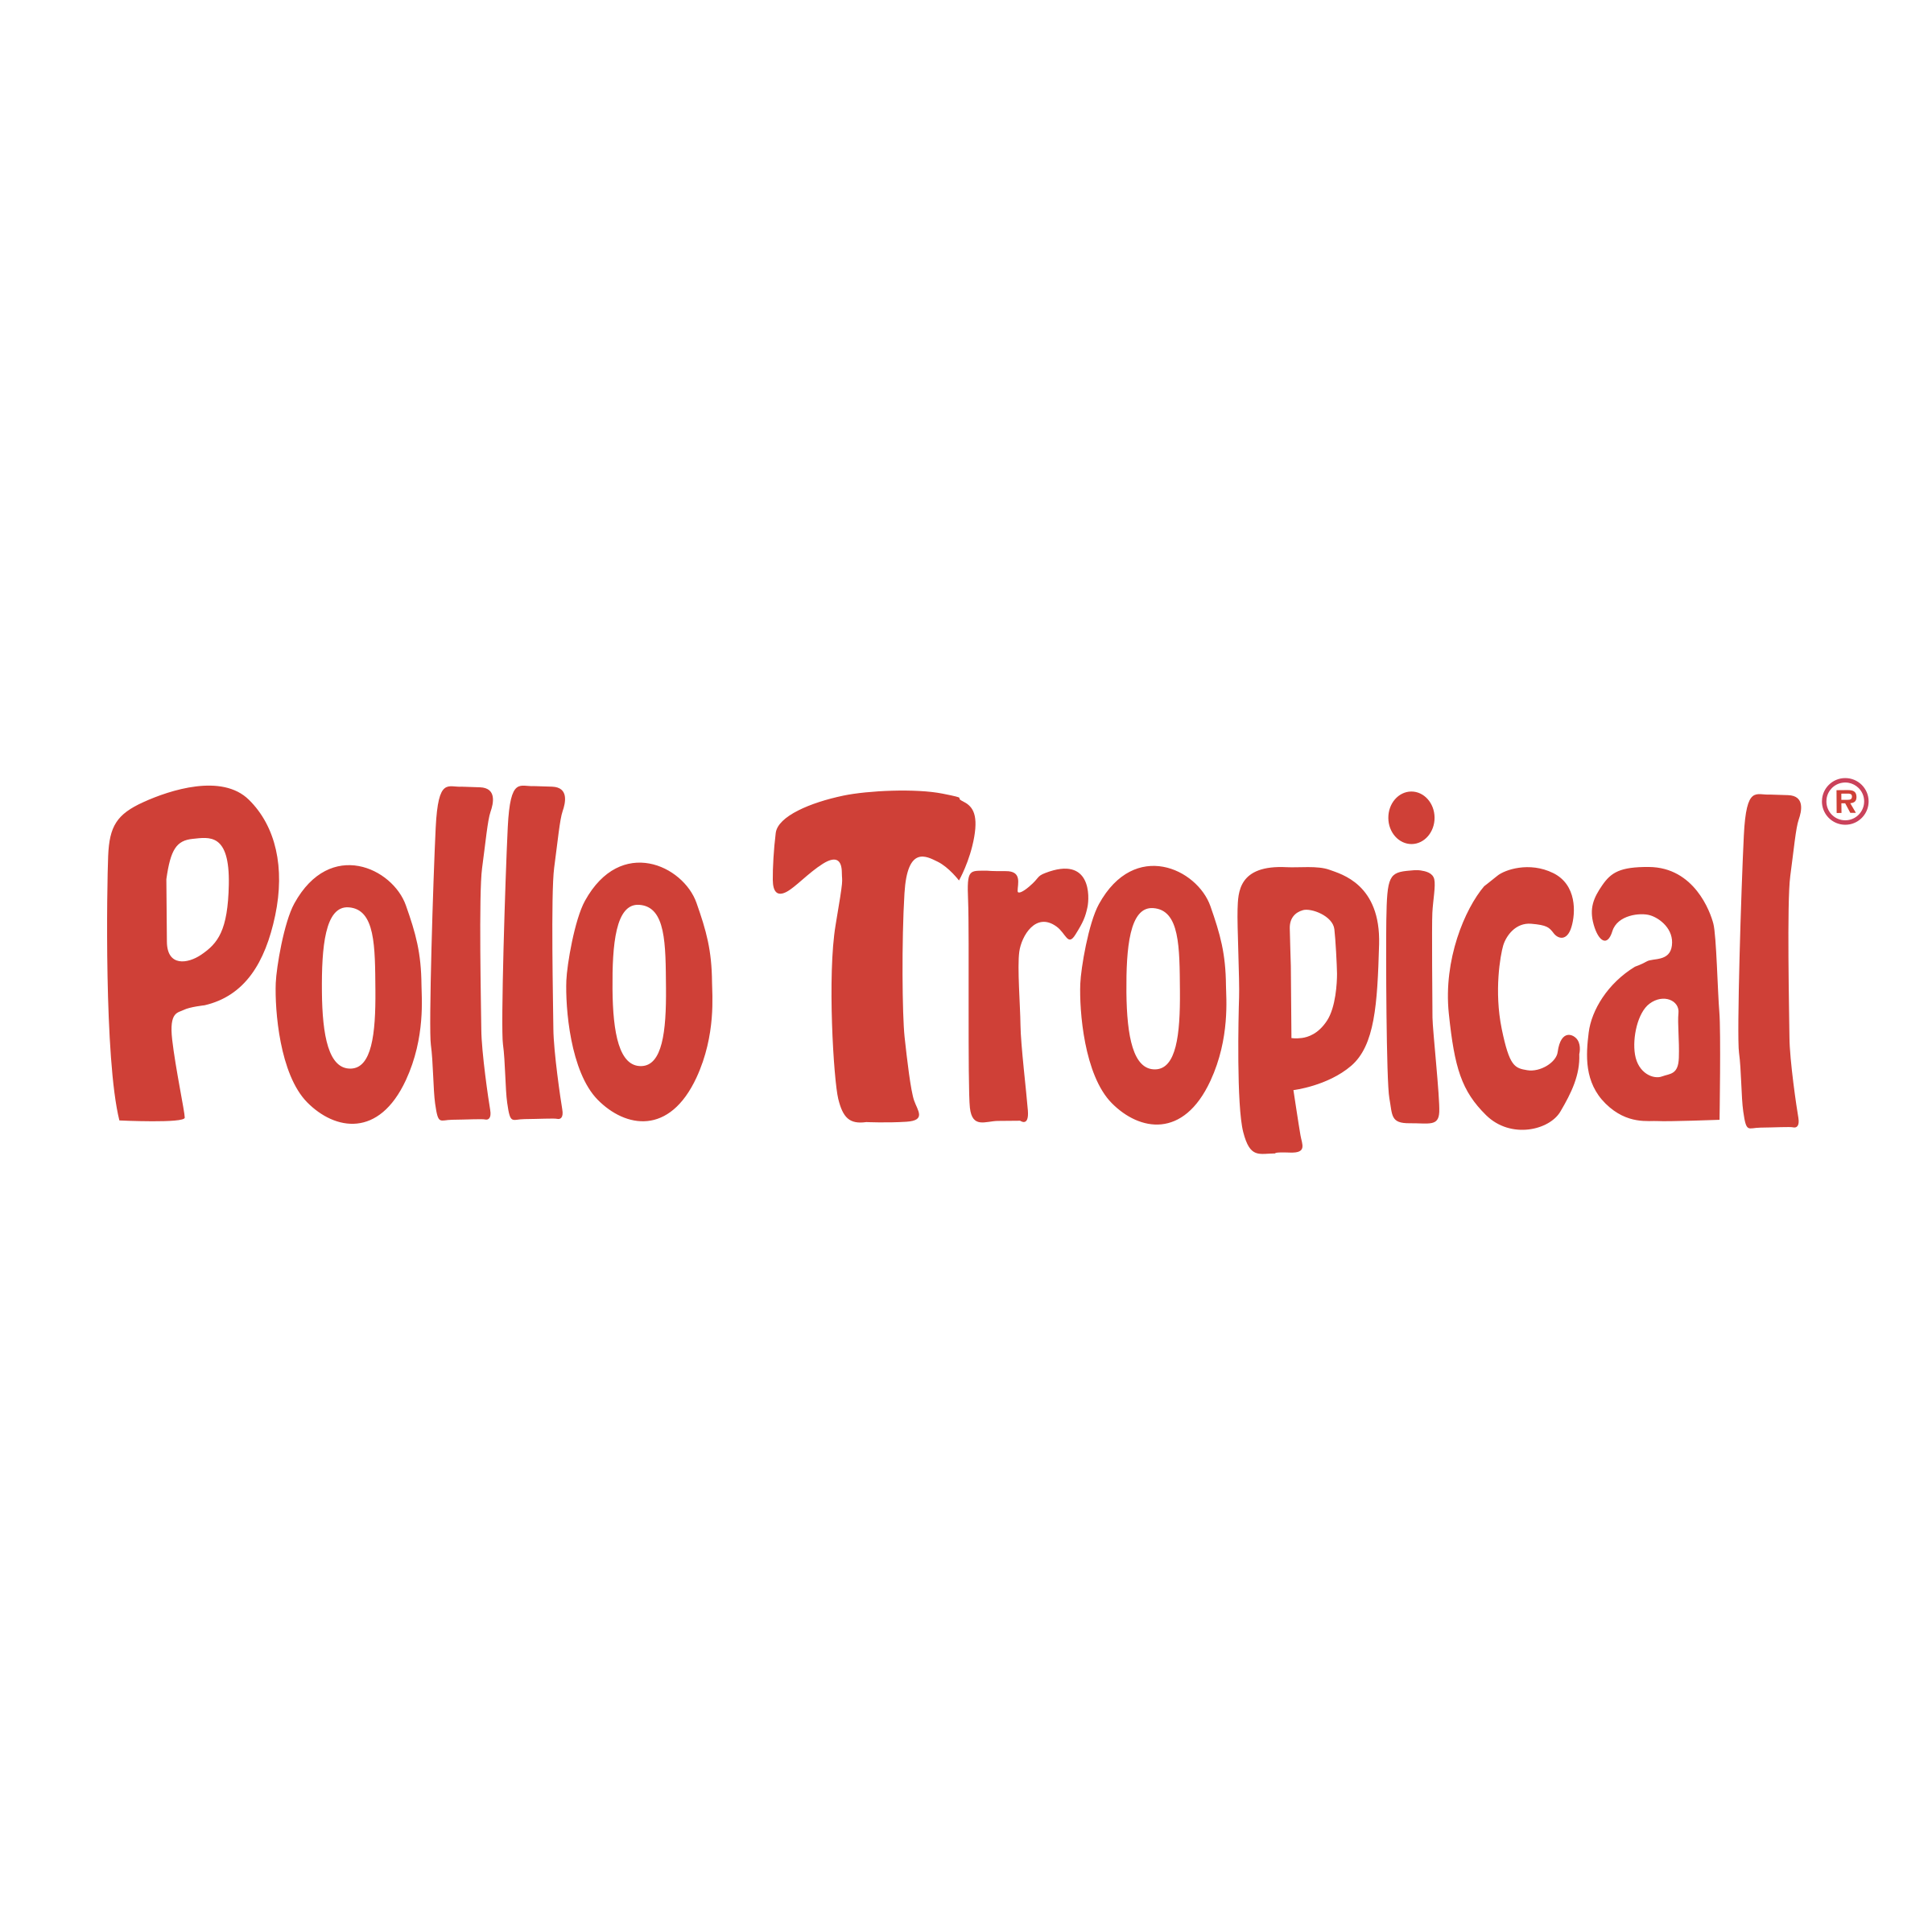 Pollo tropical logo png. Transparent svg vector freebie